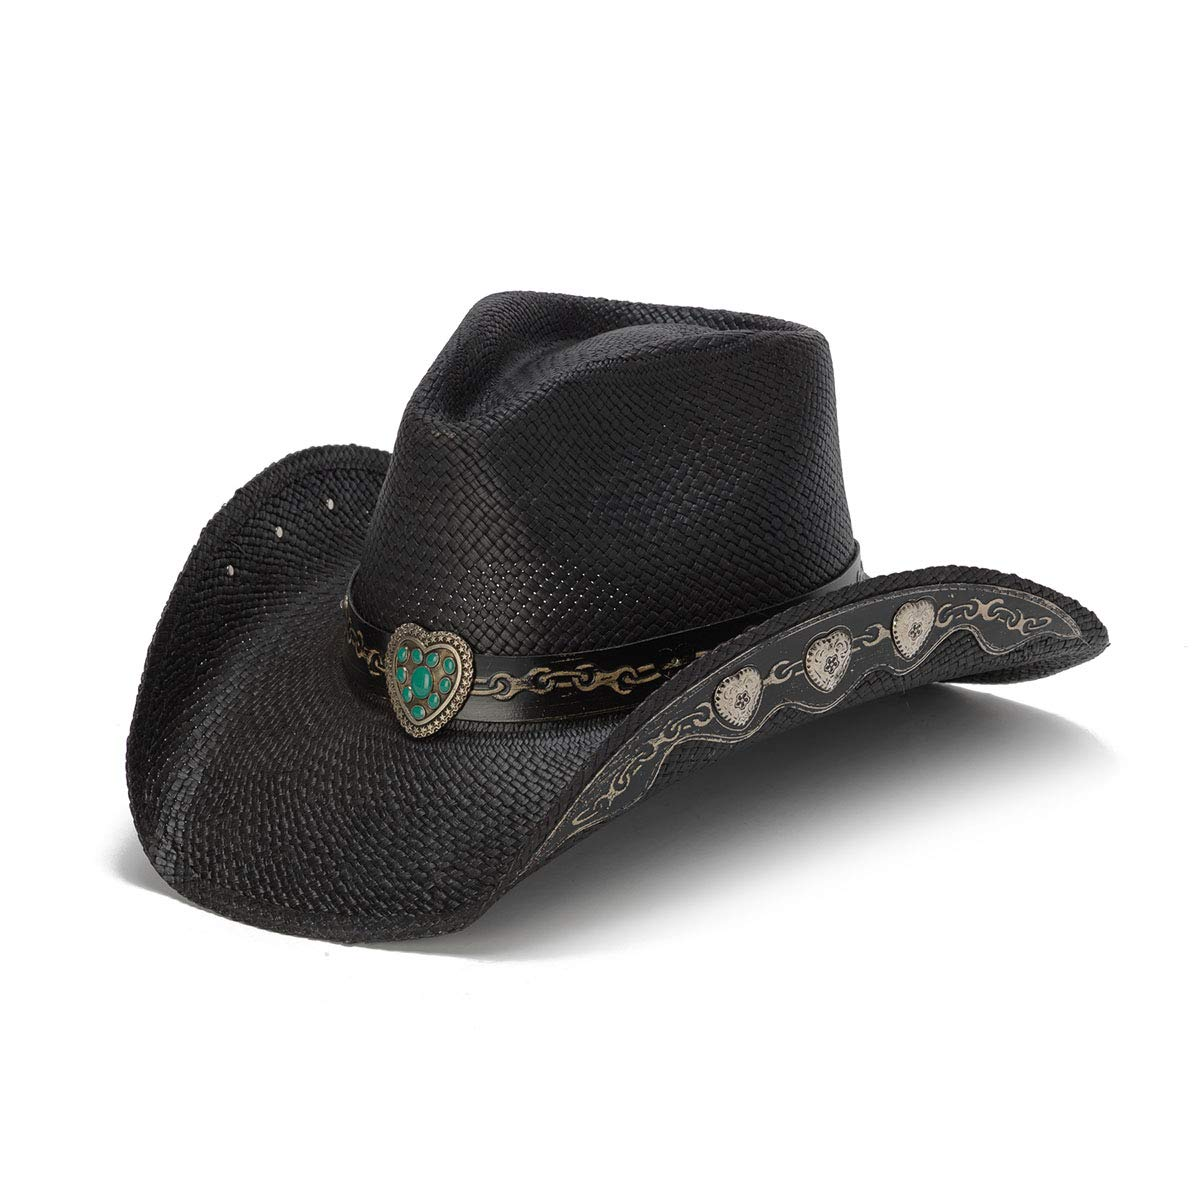 Stampede Hats Women's Hardhearted Hearts and Chains Straw Western Hat L Black